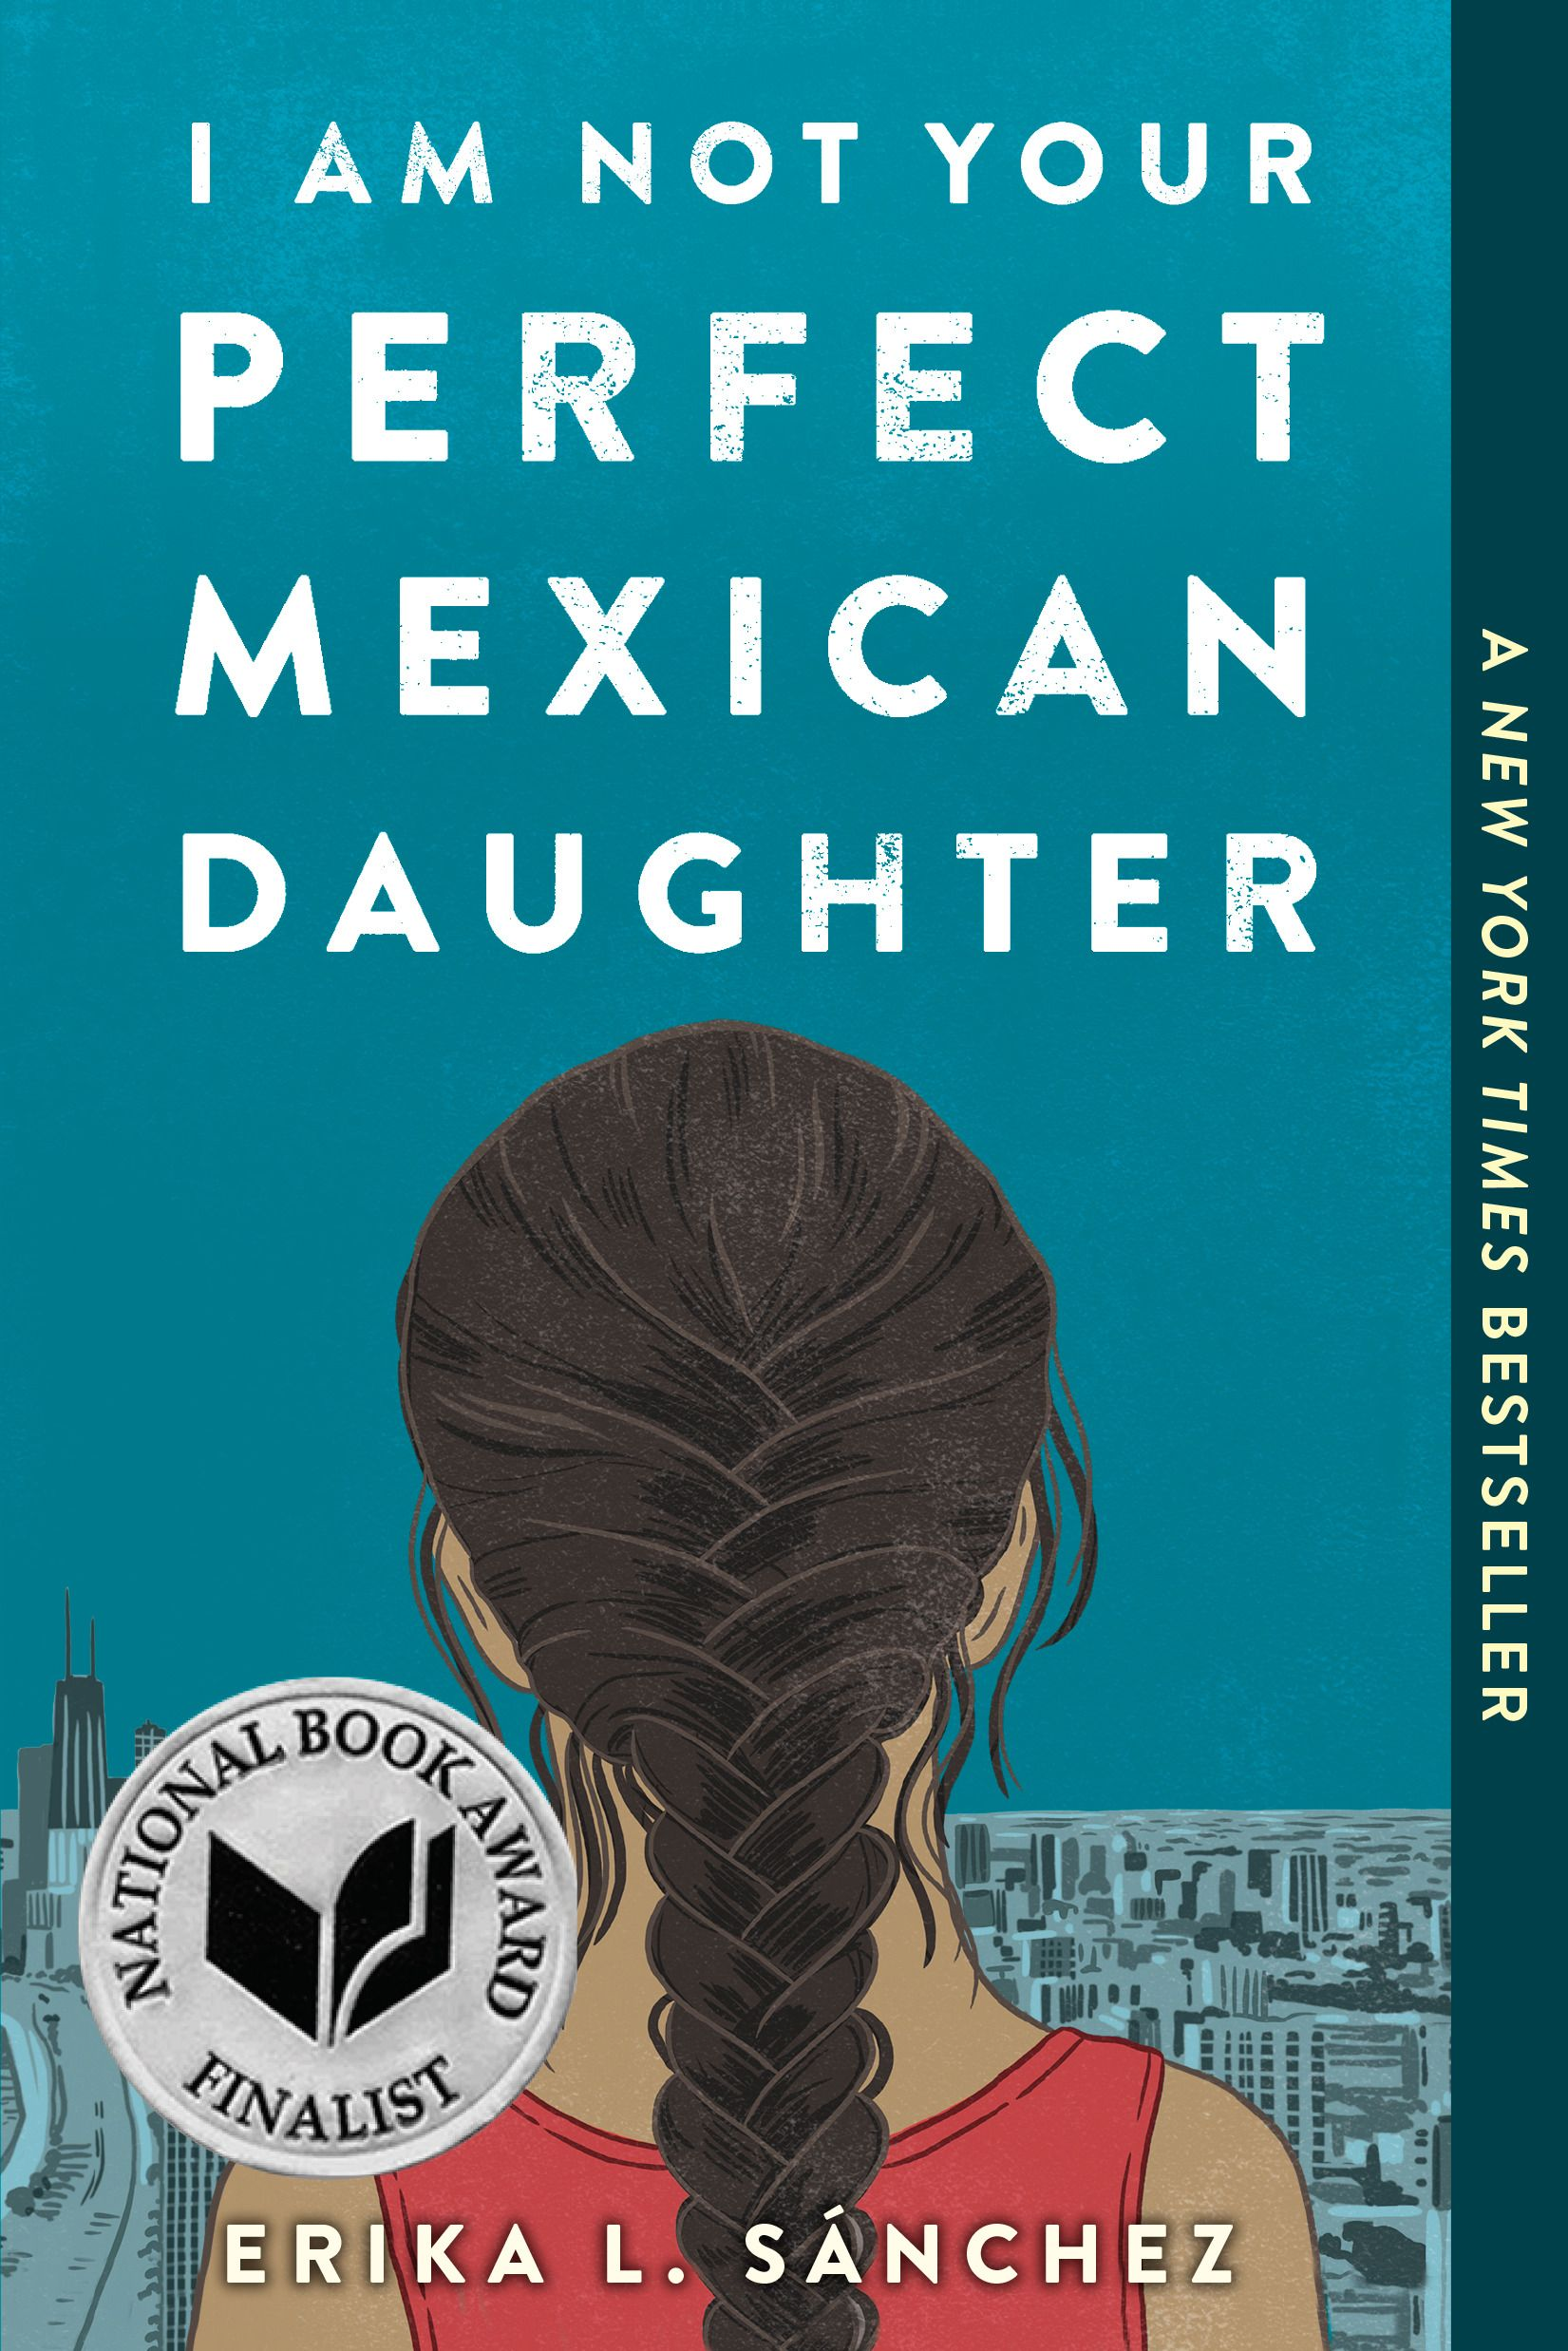 I Am Not Your Perfect Mexican Daughter by Erika L. Sanchez - The Absolutely True Diary of a Part-Time Indian meets Jane the Virgin in this poignant but often laugh-out-loud funny contemporary YA about losing a sister and finding yourself amid the pressures, expectations, and stereotypes of growing up in a Mexican-American home.